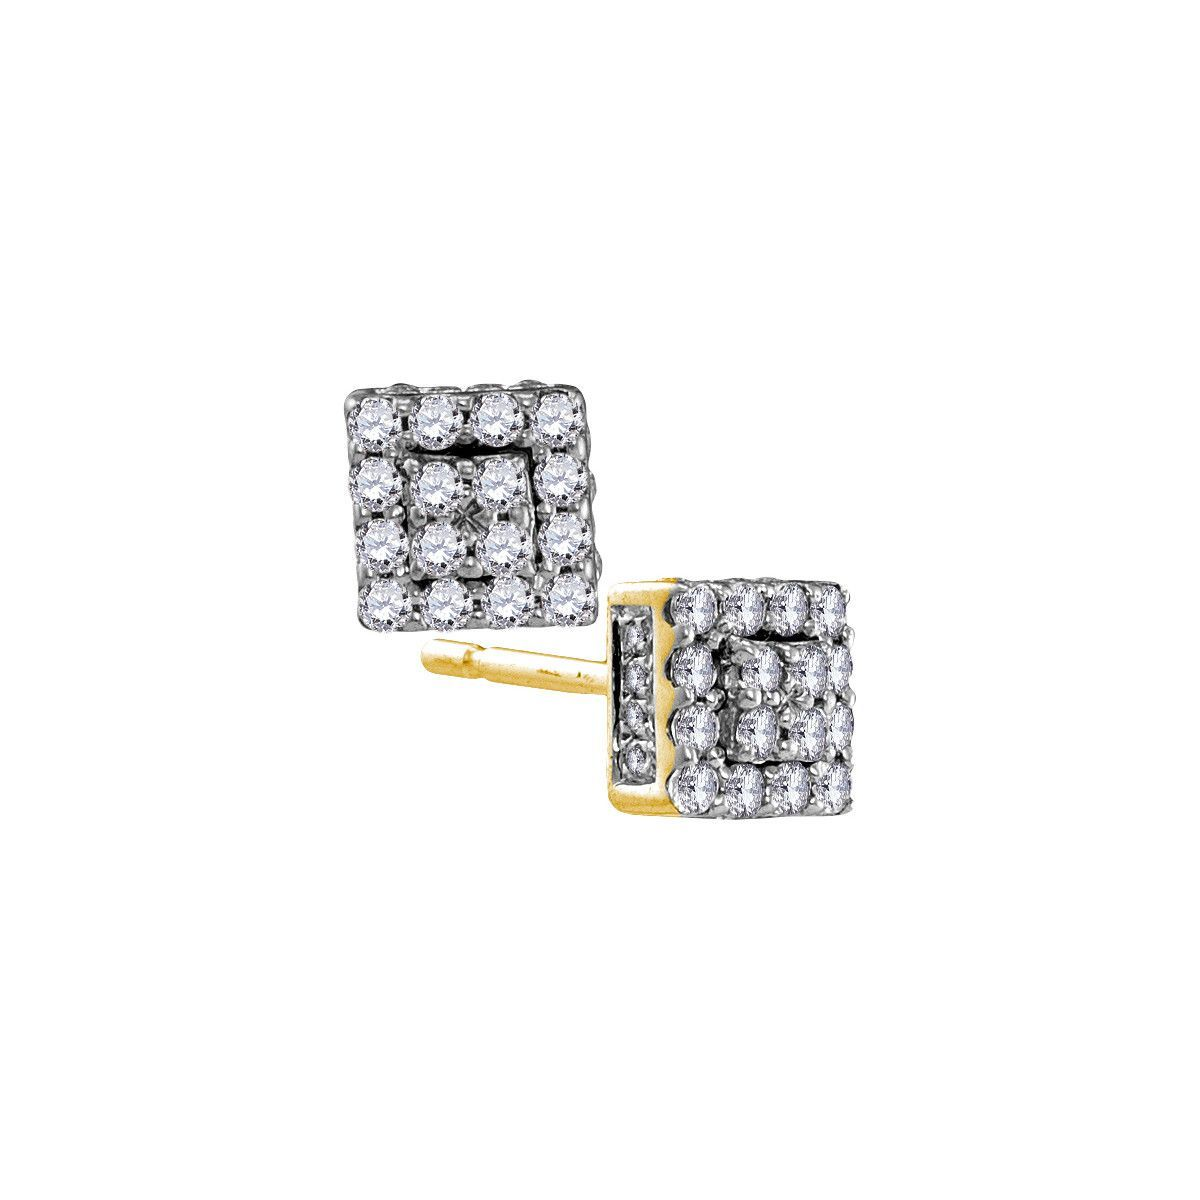 10kt Yellow Gold Womens Round Diamond Square Cluster Earrings 1/3 Cttw 105927